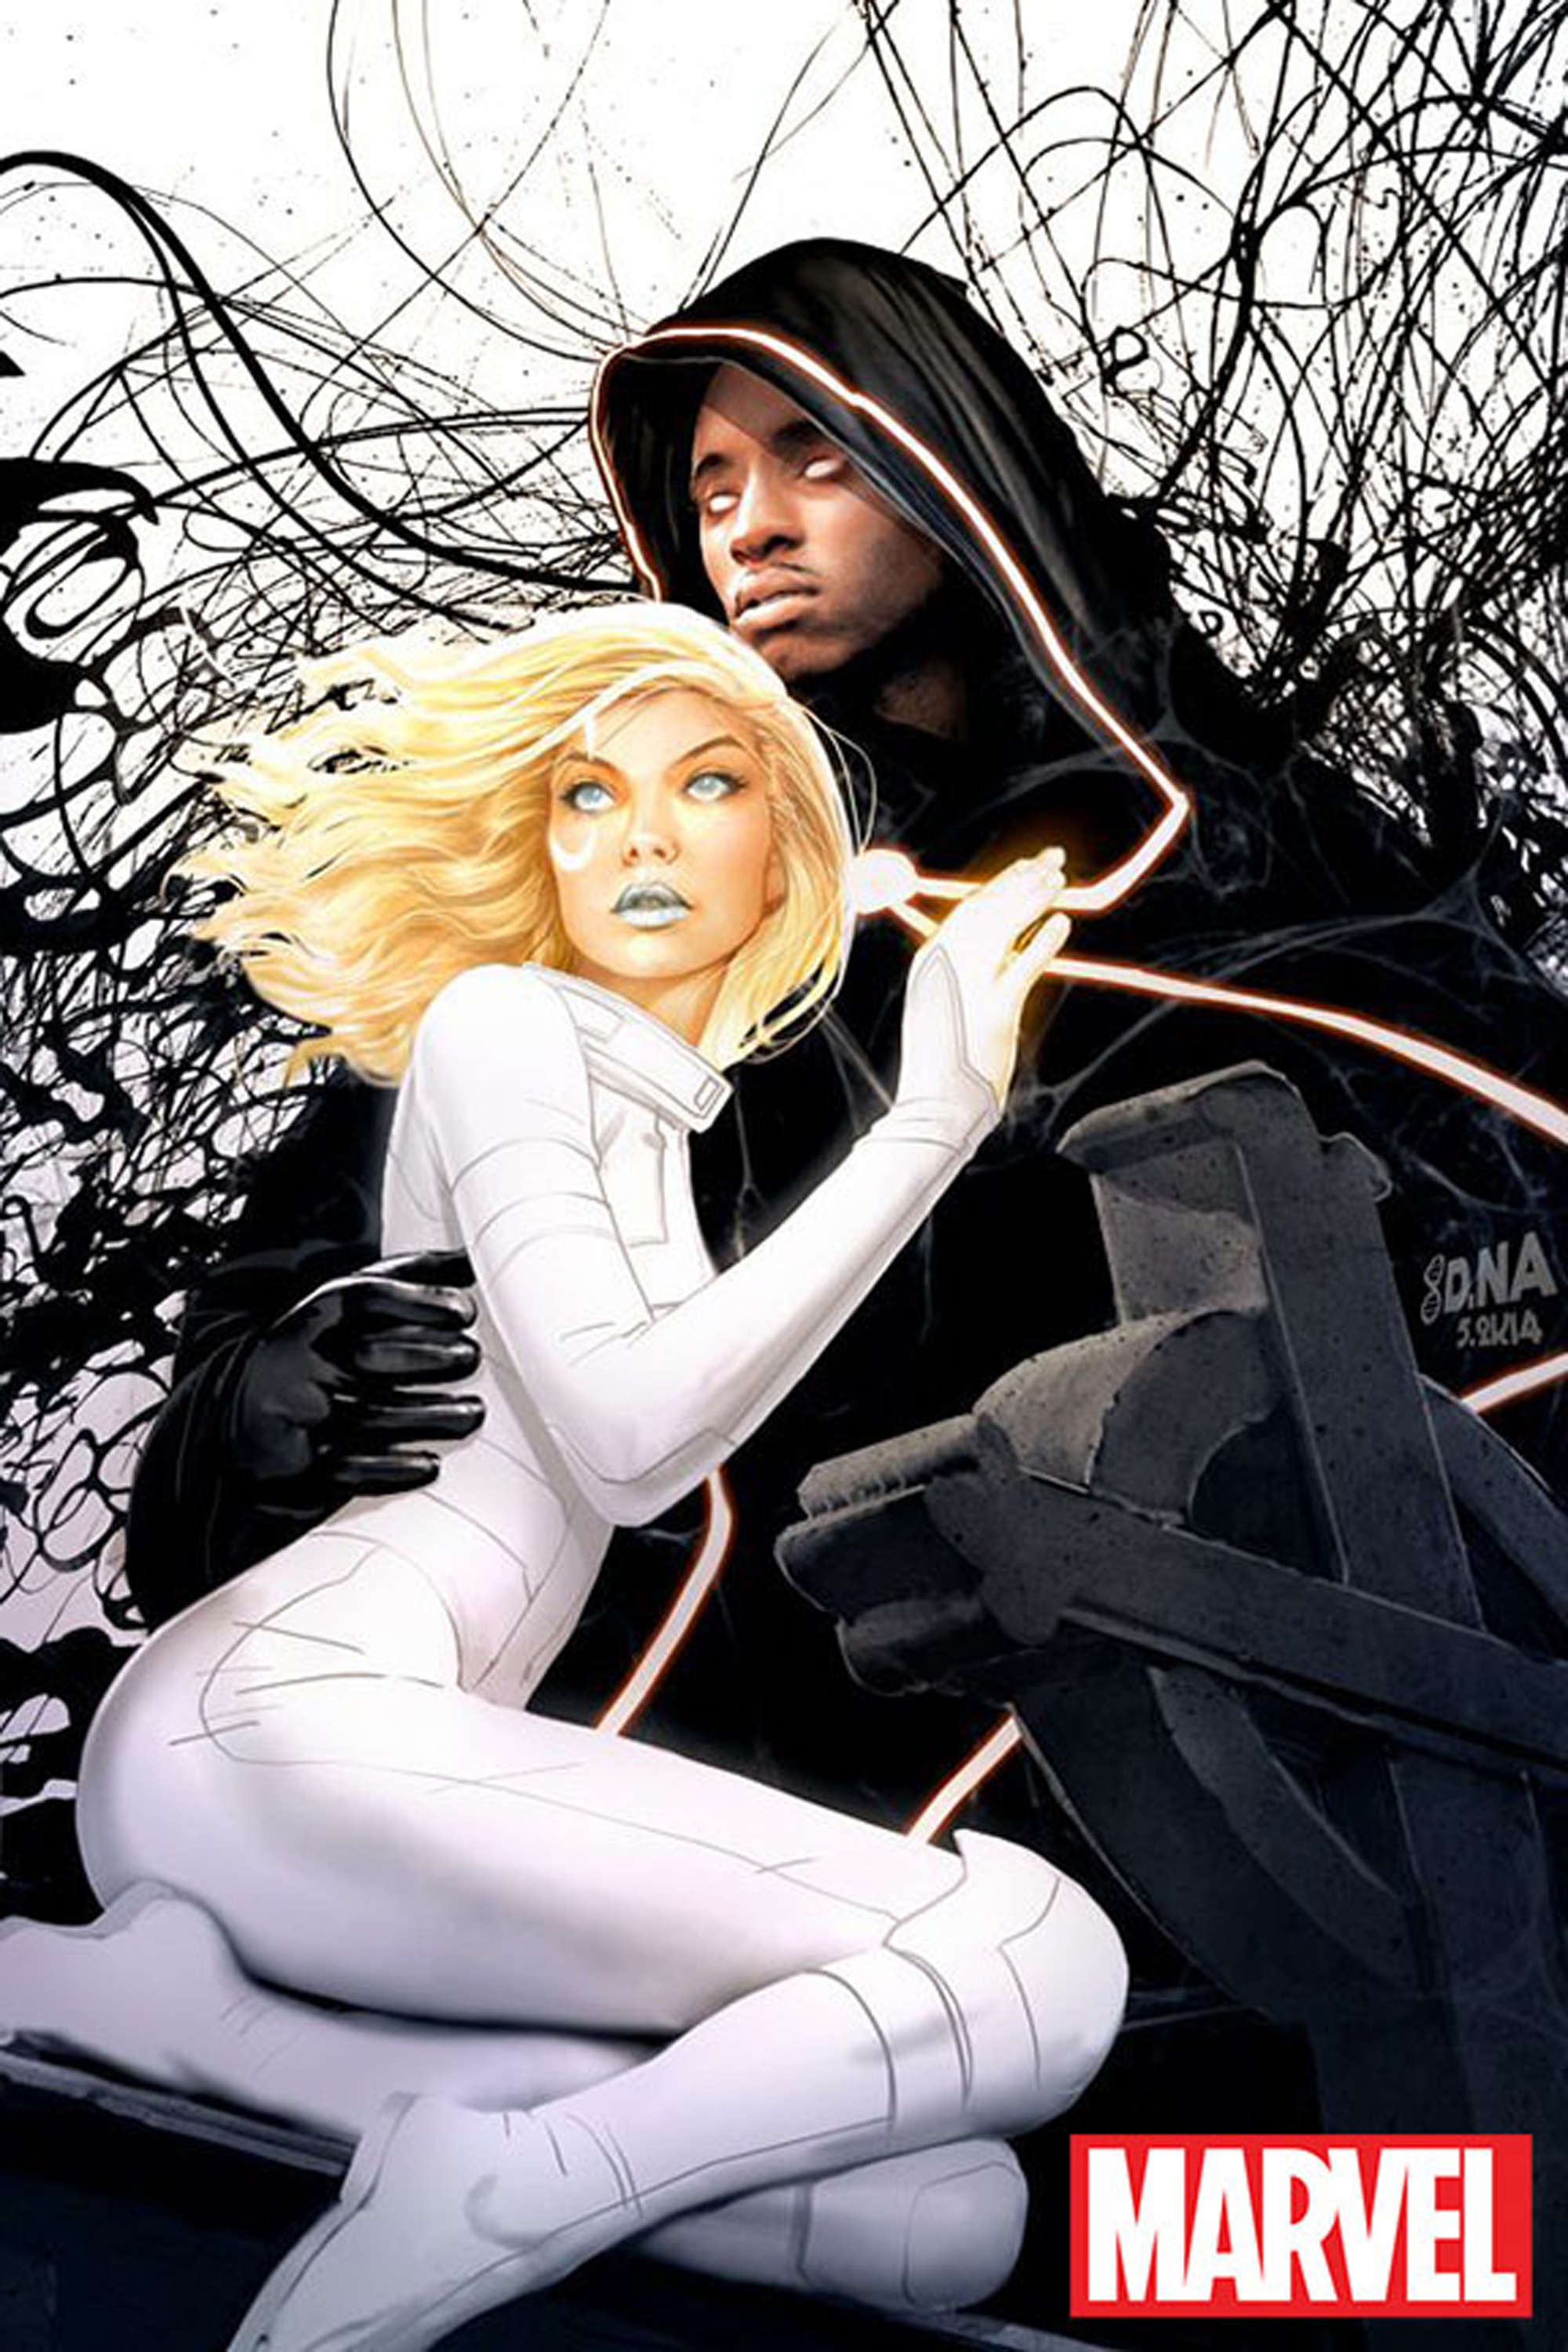 "MARVEL'S CLOAK & DAGGER - ""Marvel's Cloak & Dagger"" is an adaptation of the beloved Marvel characters whose story is aimed squarely at young adults. This live-action interracial romance follows Tandy Bowen and Tyrone Johnson, two teenagers from very different backgrounds, who find themselves burdened and awakened to newly acquired superpowers while falling in love. Tandy can emit light daggers and Tyrone has the ability to engulf others in darkness. They quickly learn they are better together than apart -- but their feelings for each other make their already complicated world even more challenging. ""Marvel's Cloak & Dagger"" is a co-production of Marvel Studios and ABC Signature Studios. (Freeform)"